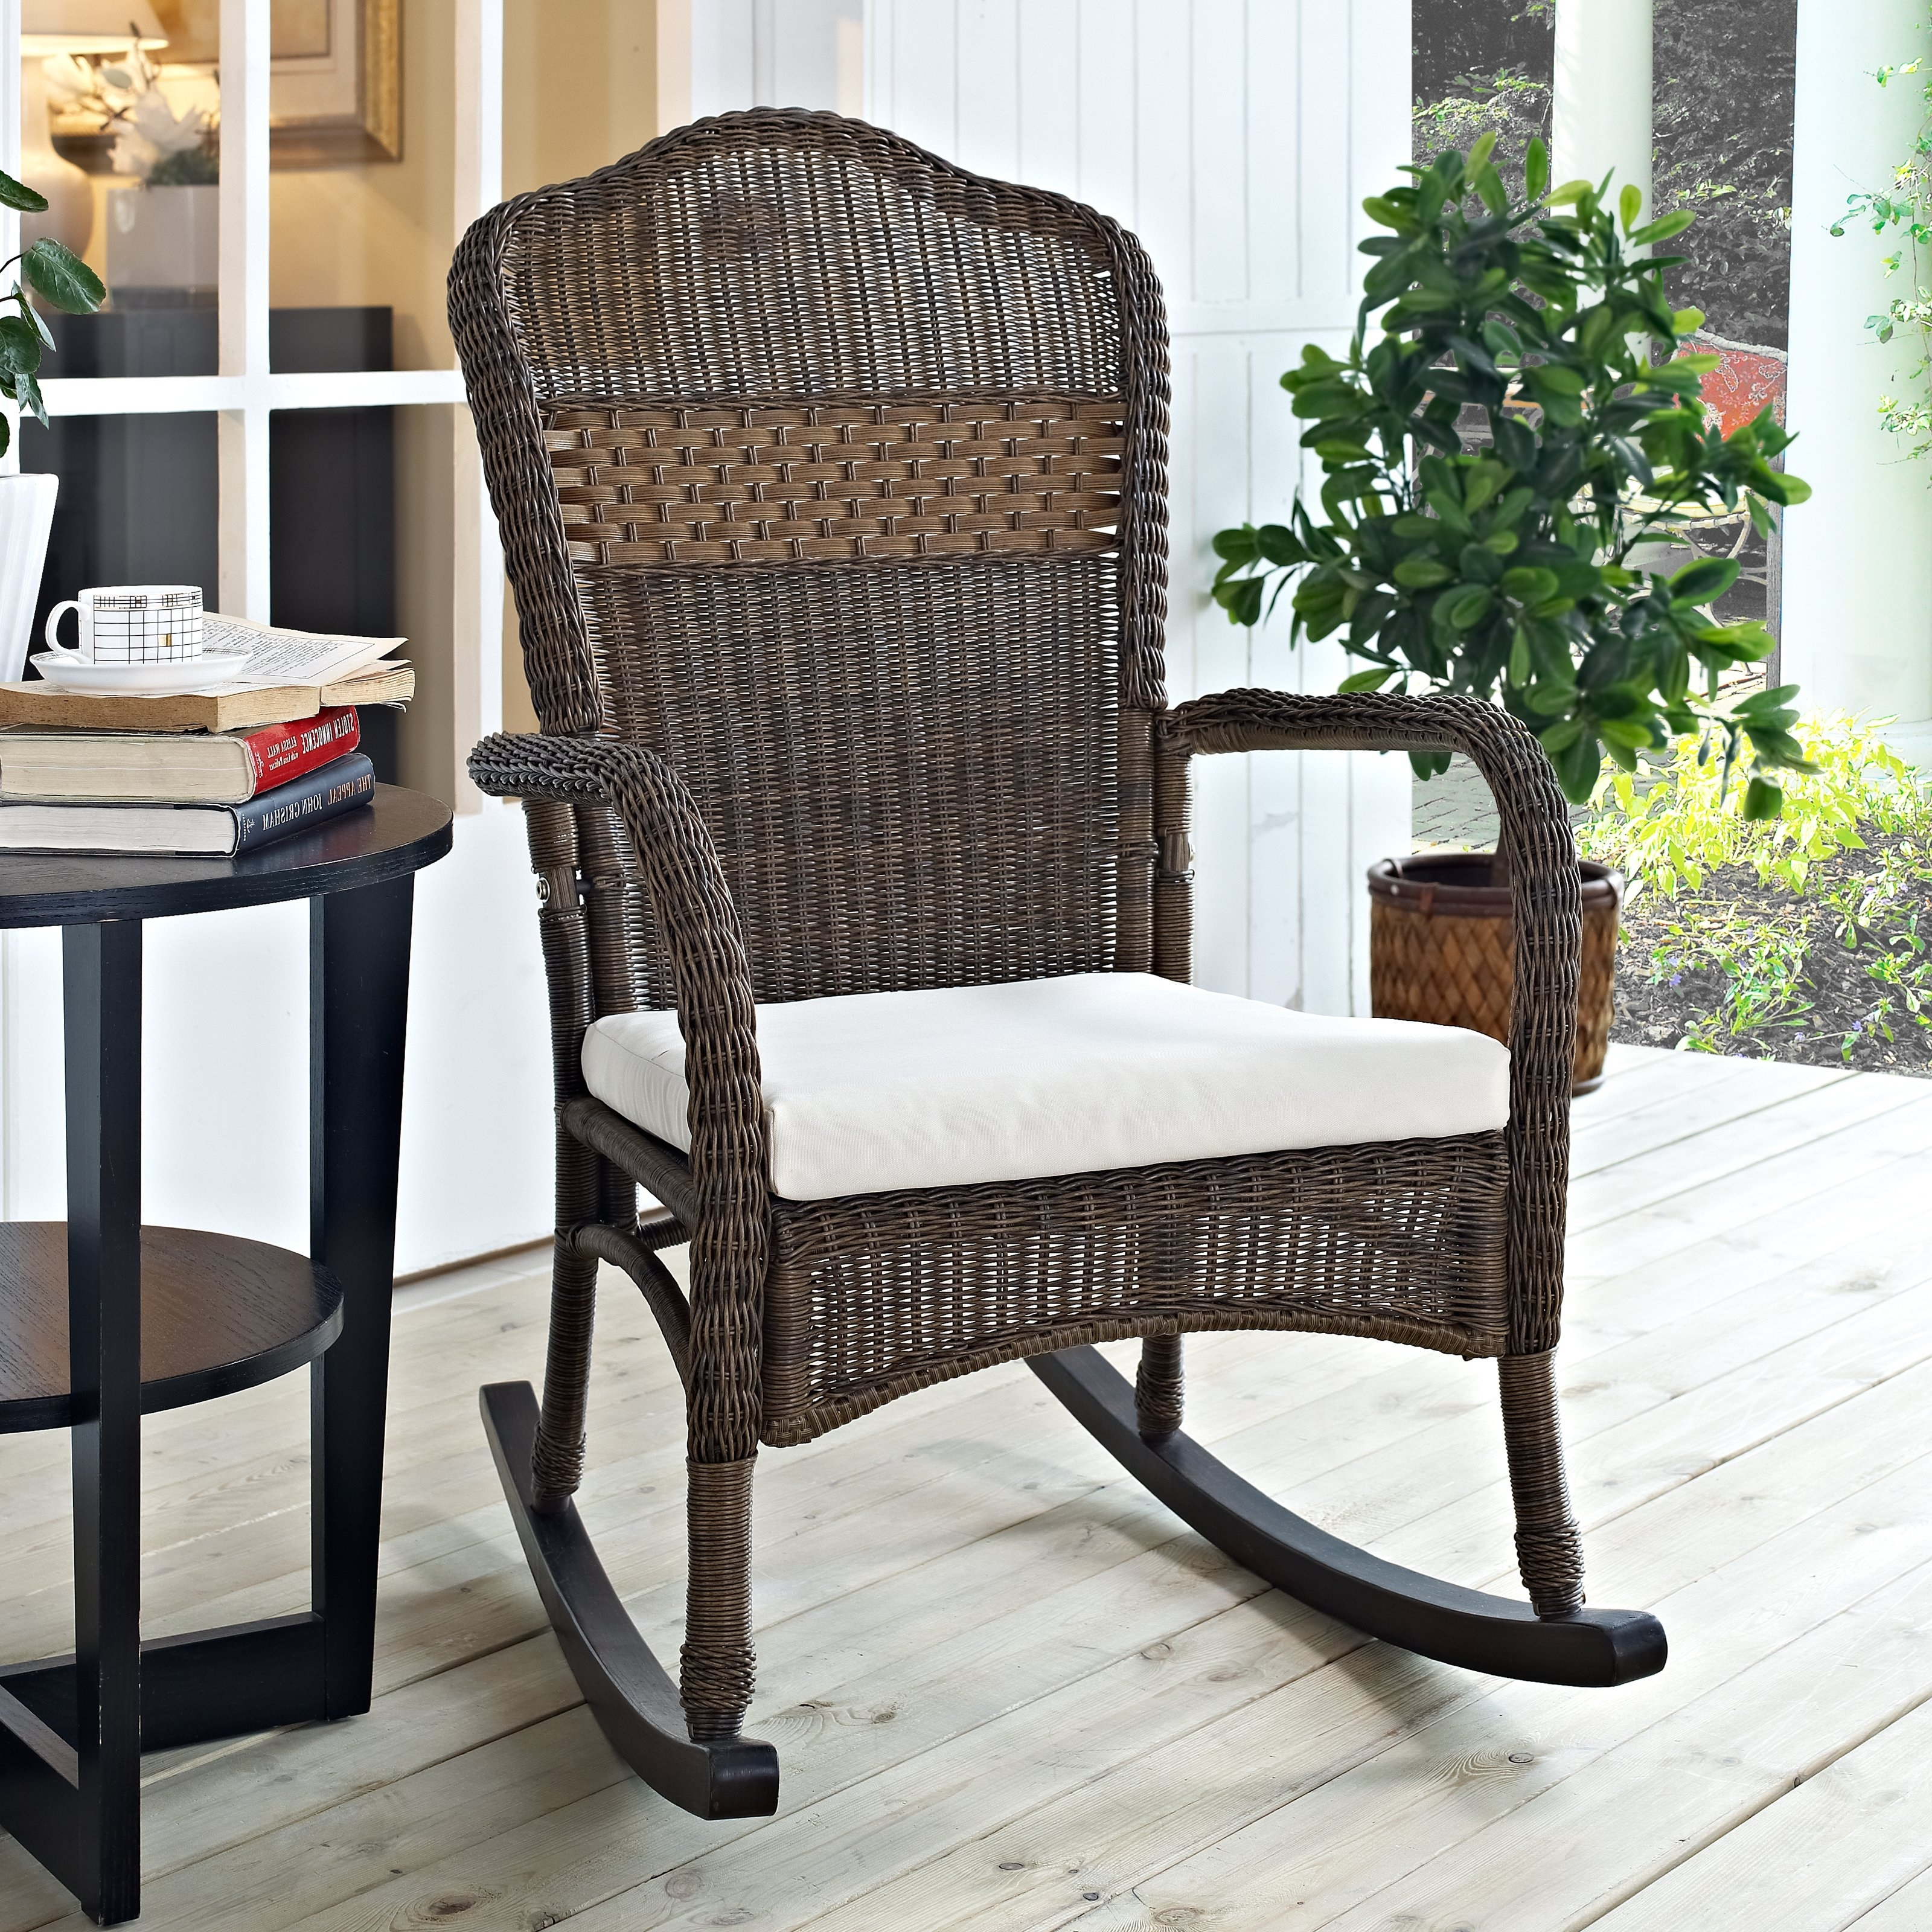 Trendy Patio : White Resin Wicker Patio Furniture Outdoor Set Clearance 94 In White Resin Patio Rocking Chairs (View 12 of 20)